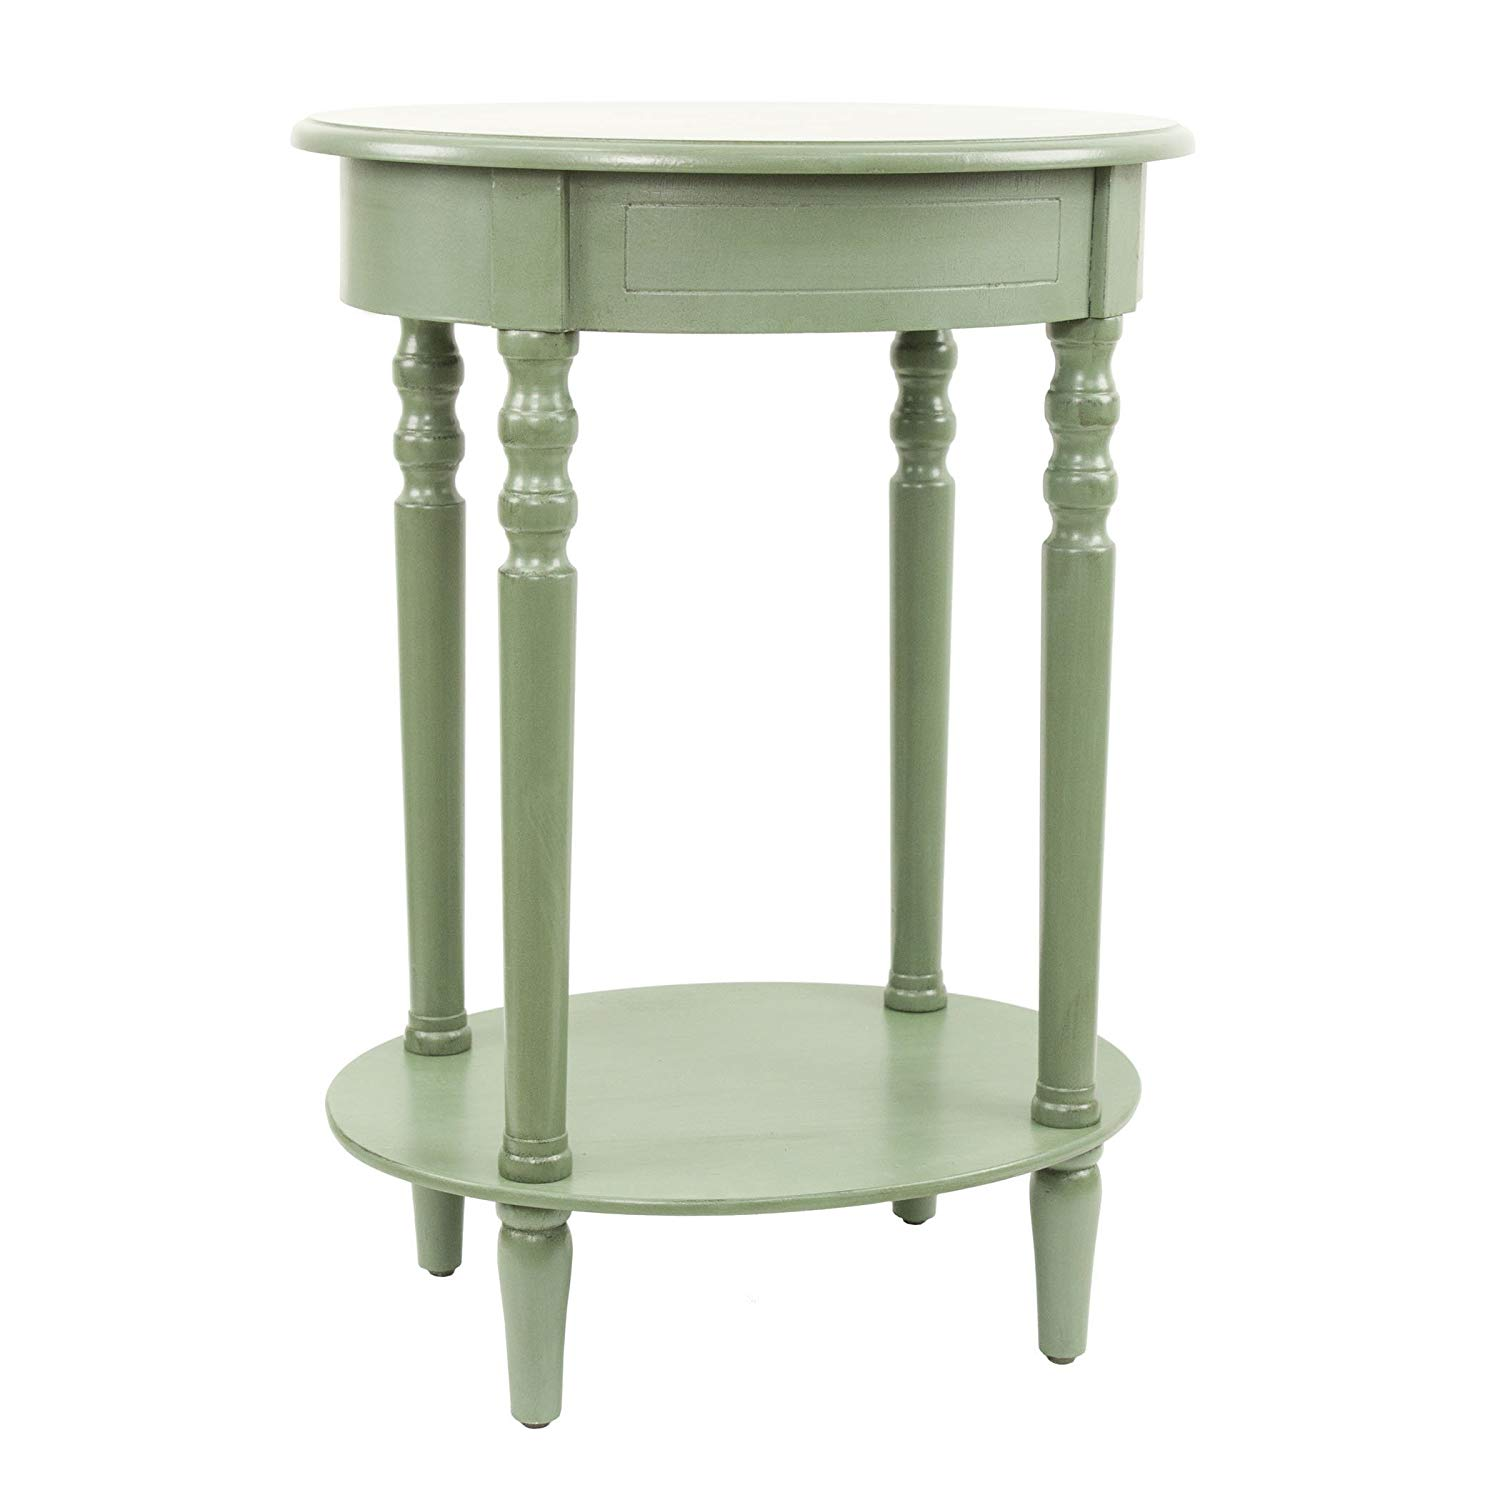 decor therapy simplify oval accent table antique green kitchen dining rattan marble dinner set large umbrella stand hayworth furniture wooden outdoor chairs transparent modern